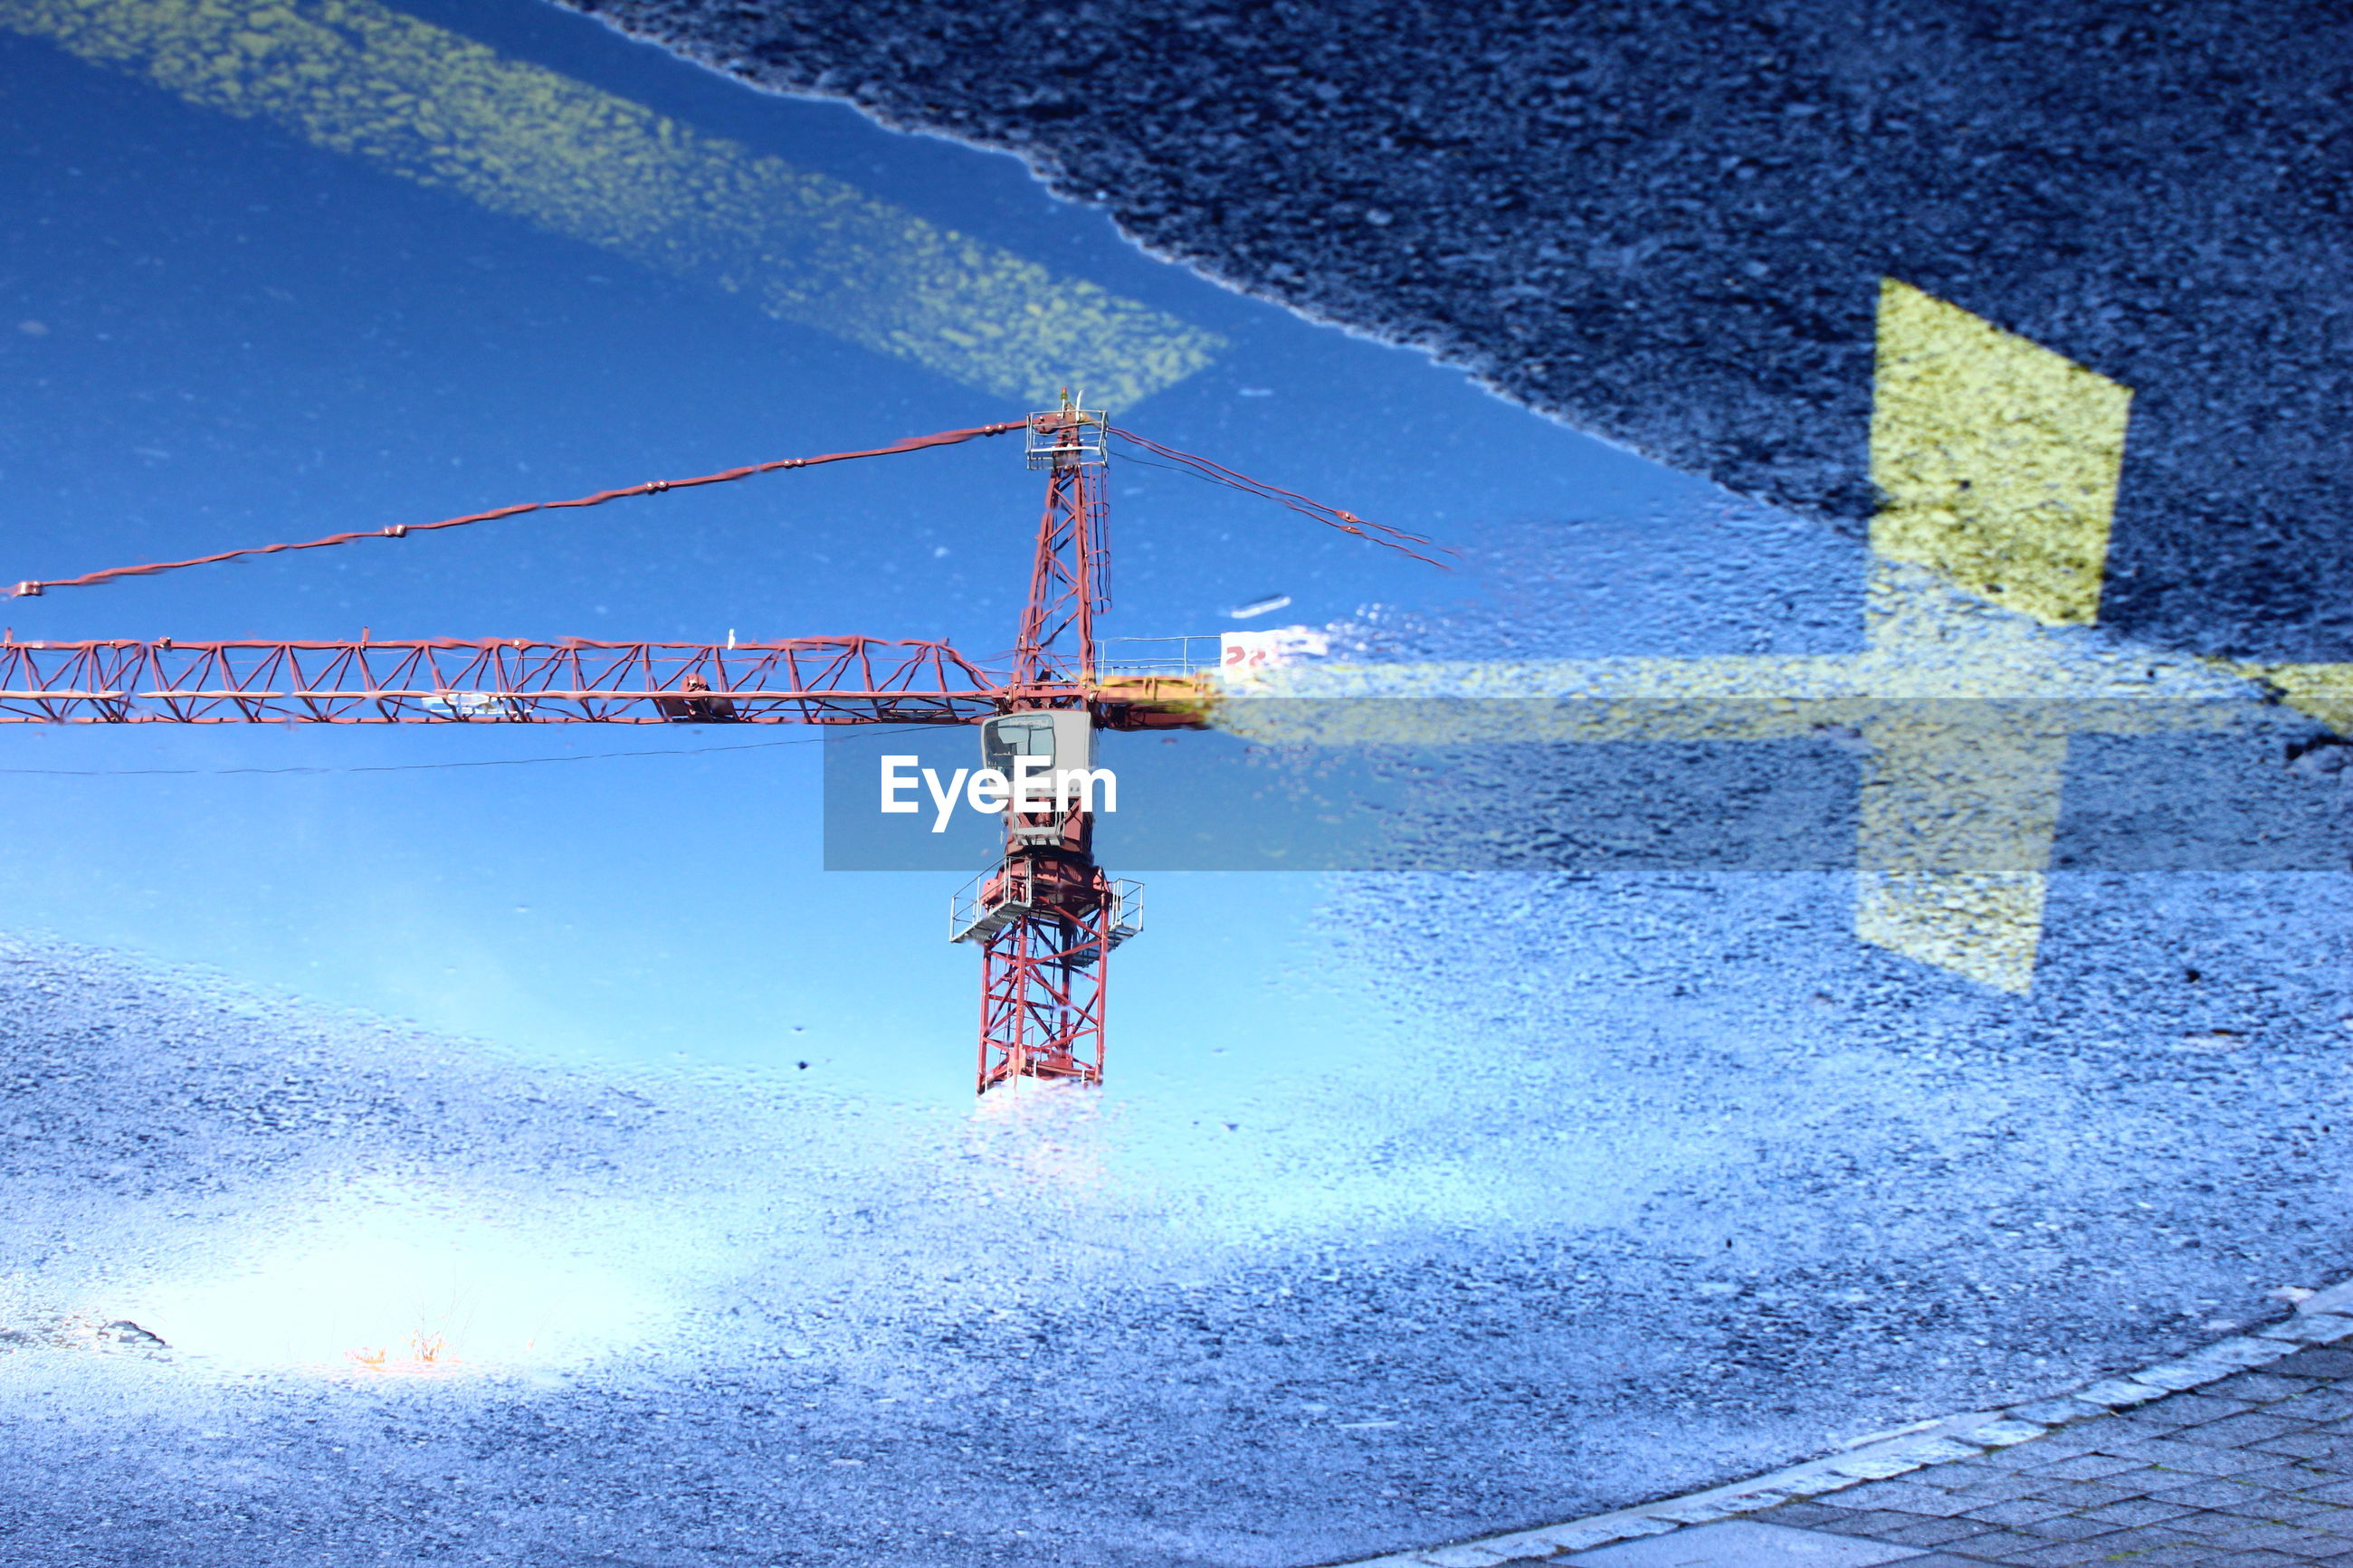 Reflection of crane in puddle